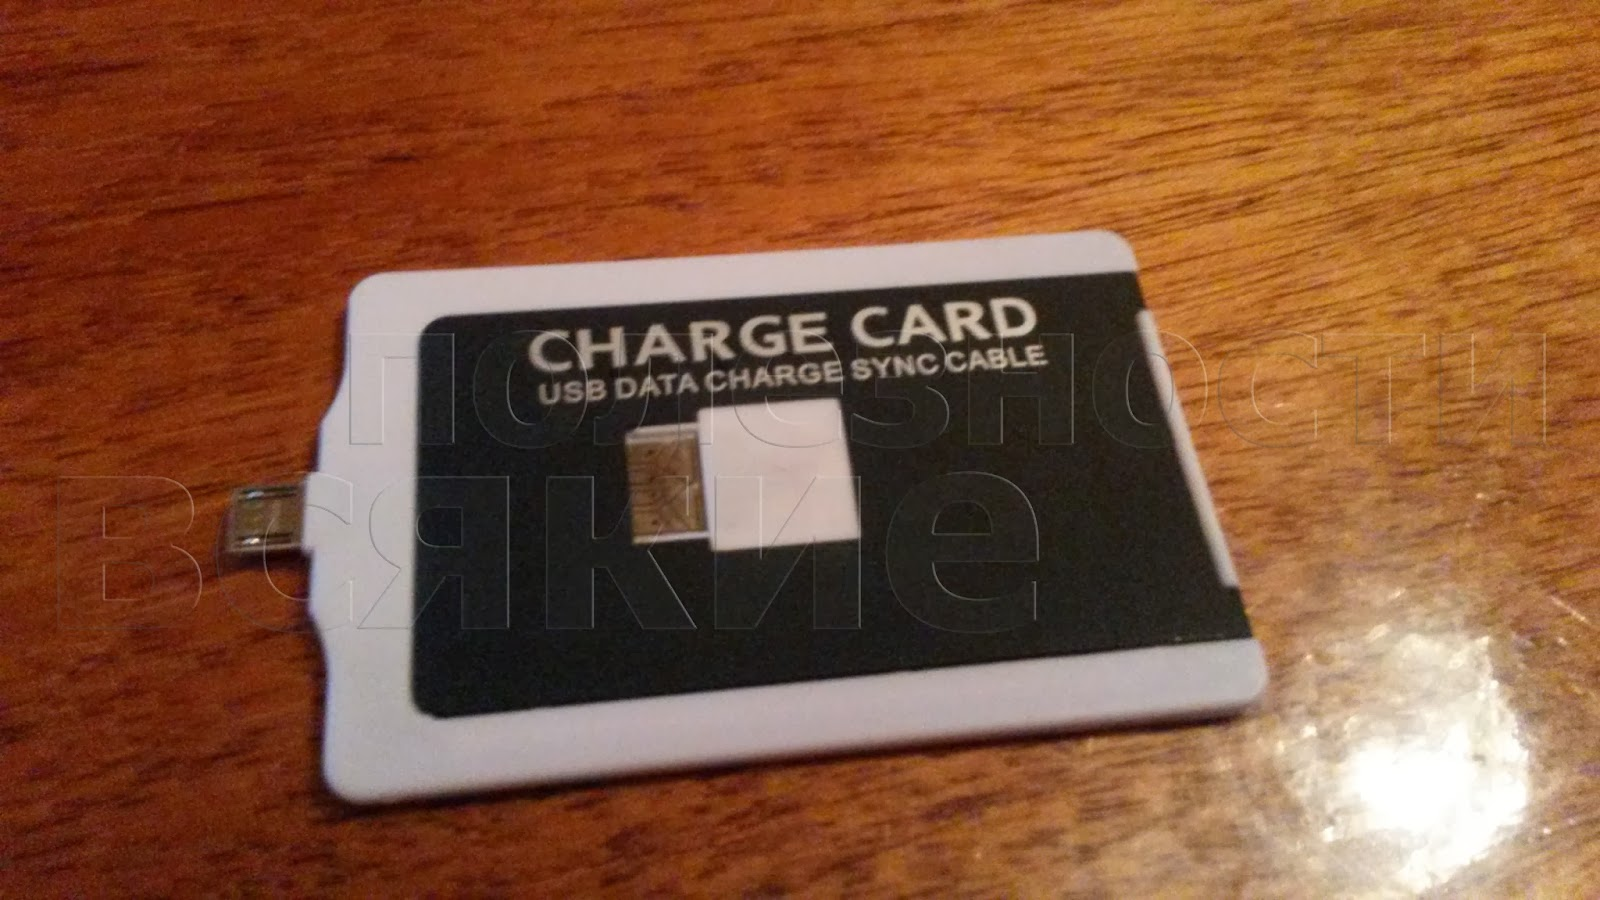 charge card usb data charge sync cable